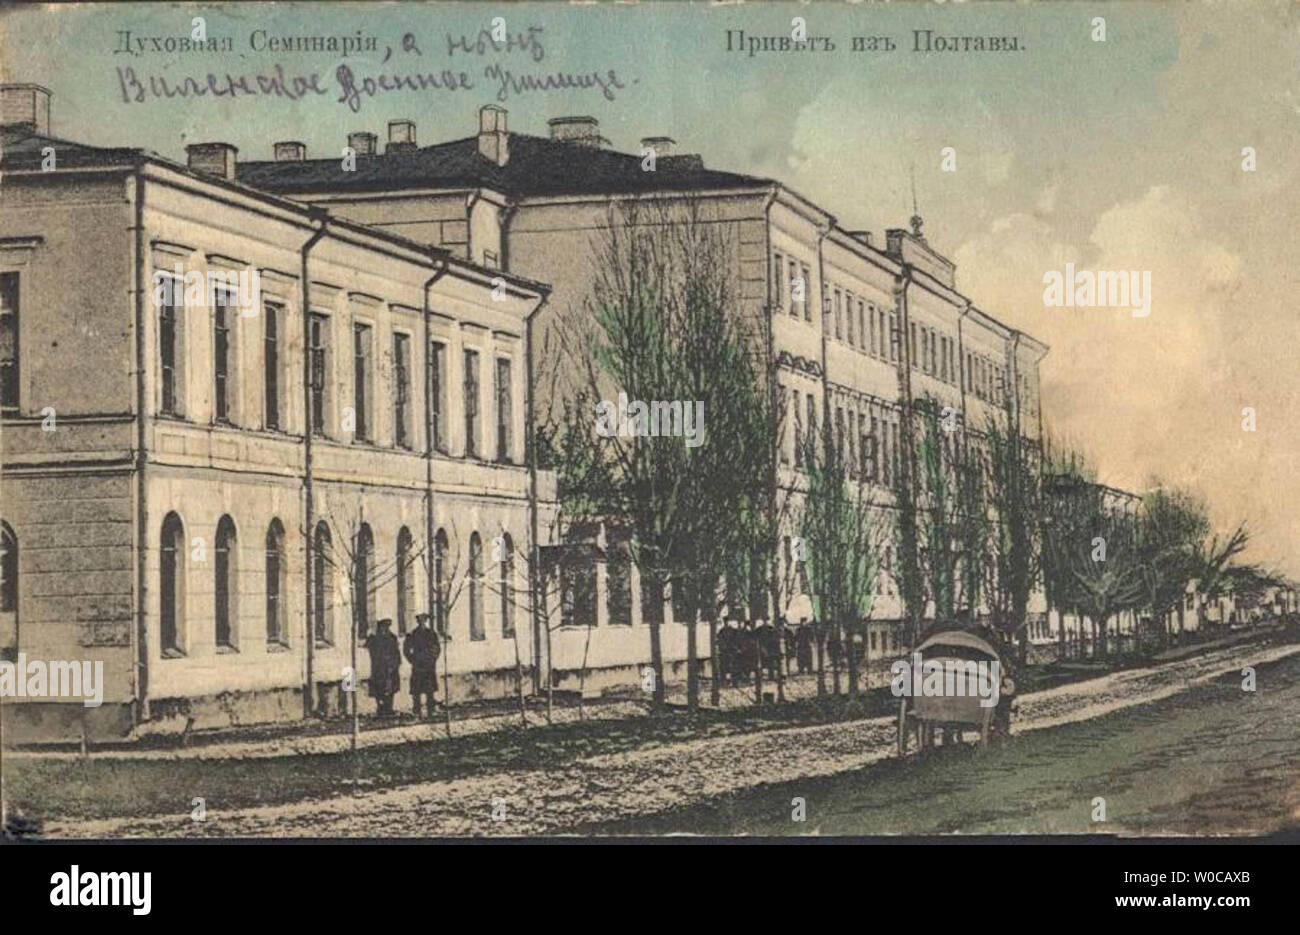 Theological seminary, which during World War I was converted into a military school quartering the Vilno Cadet School - Stock Image